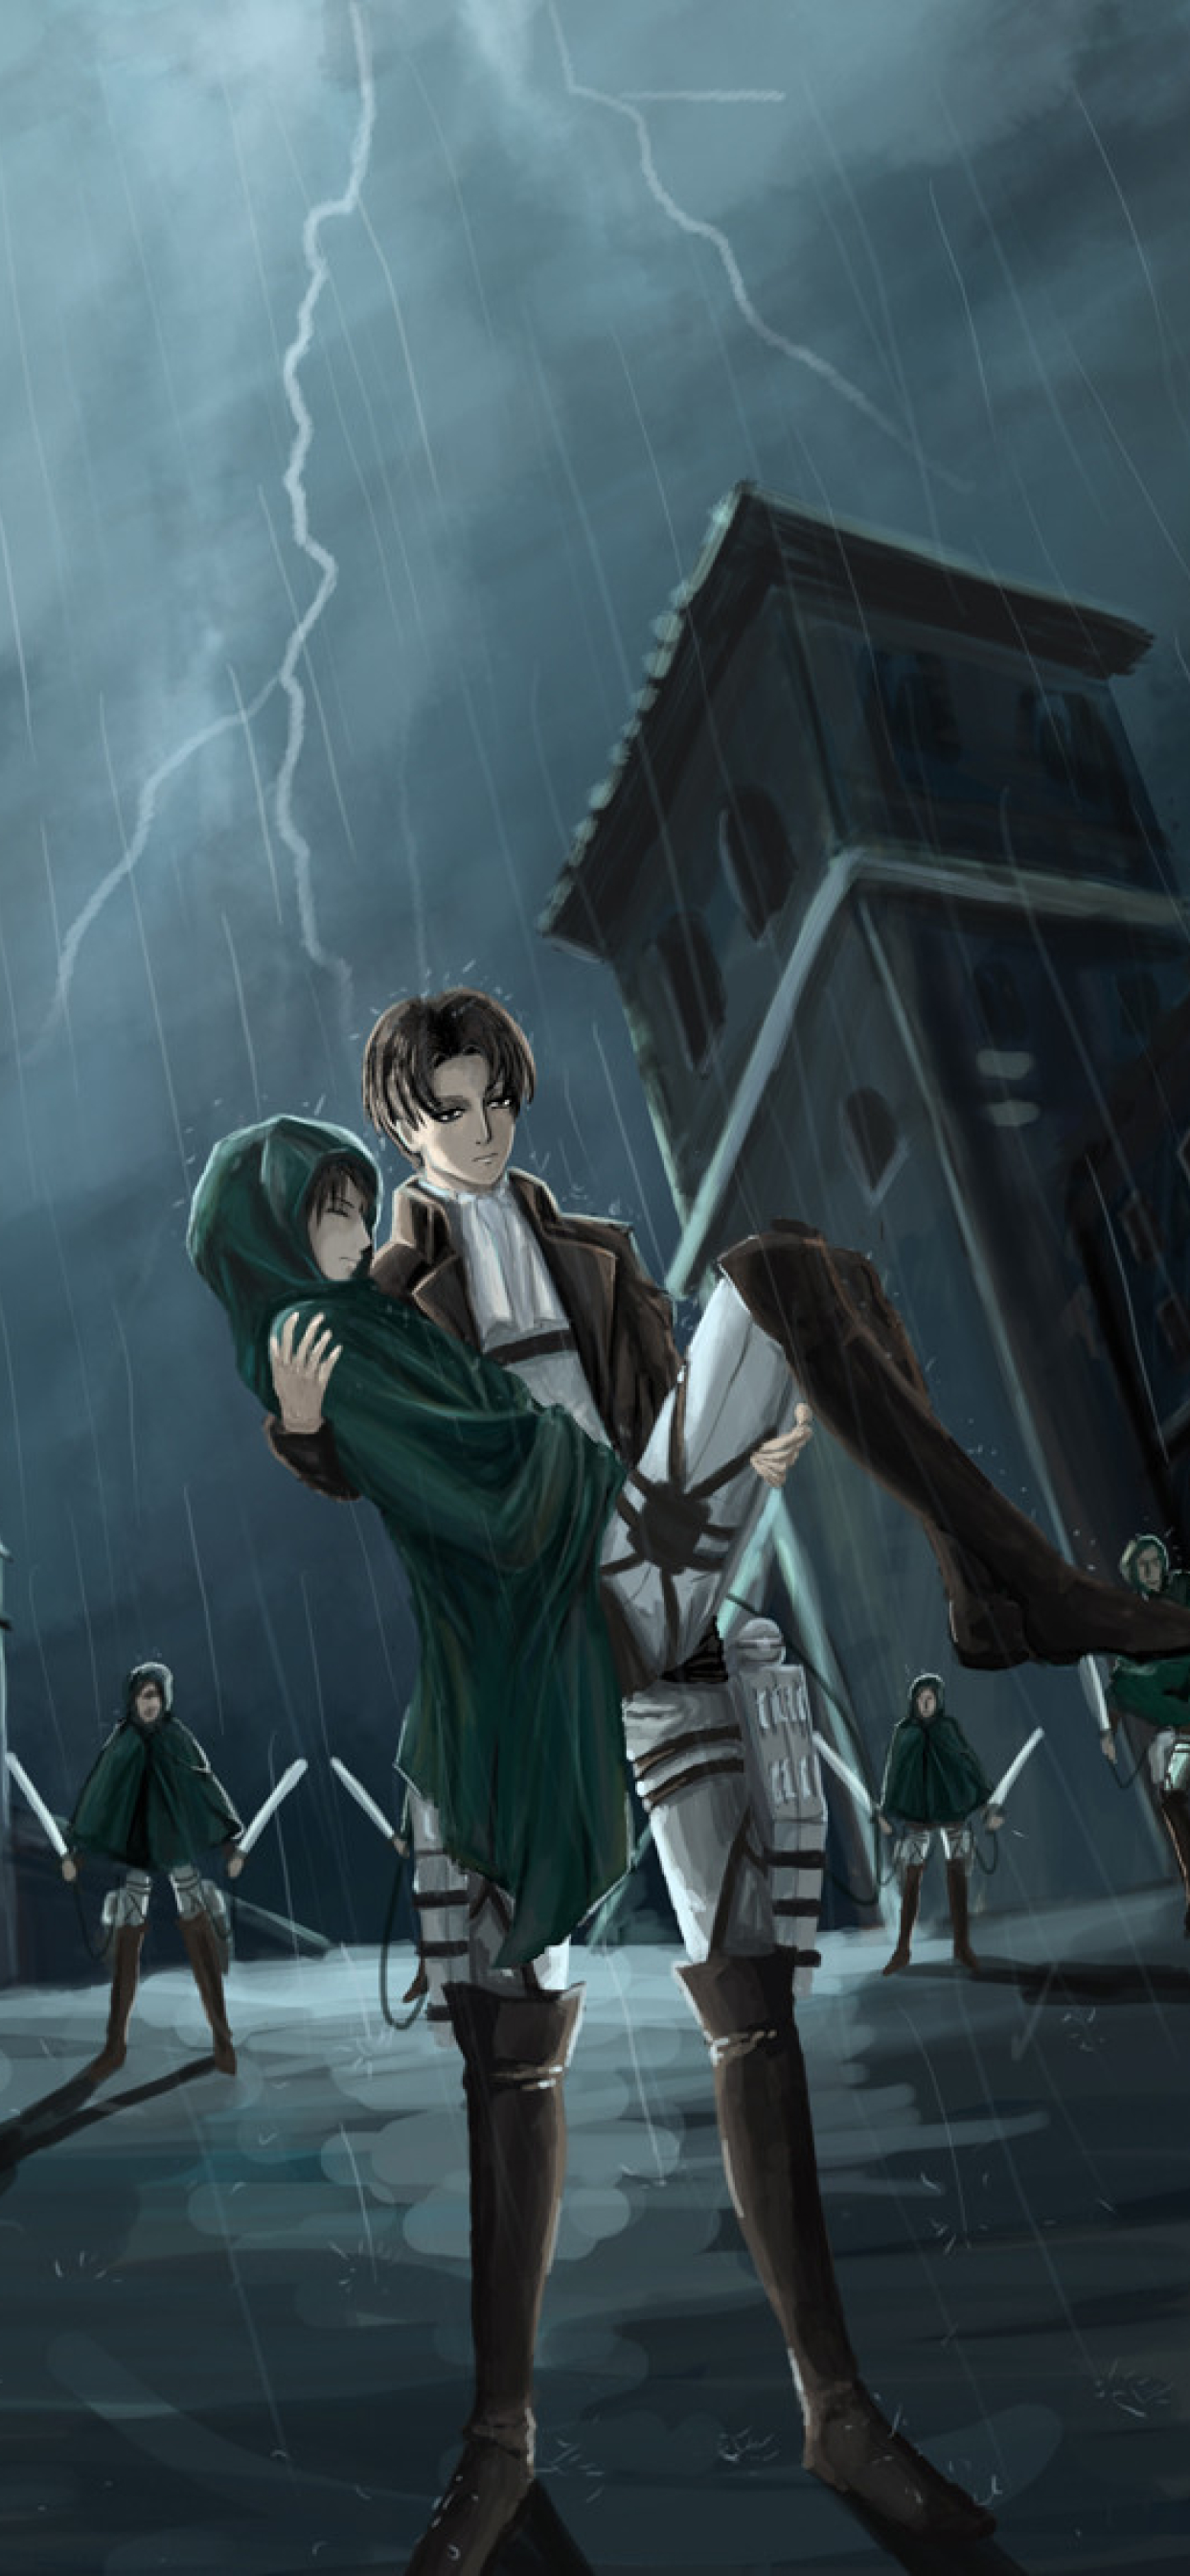 1242x2688 Levi Ackerman Aot Iphone Xs Max Wallpaper Hd Anime 4k Wallpapers Images Photos And Background Attack on titan levi and mikasa wallpaper, shingeki no kyojin. 1242x2688 levi ackerman aot iphone xs